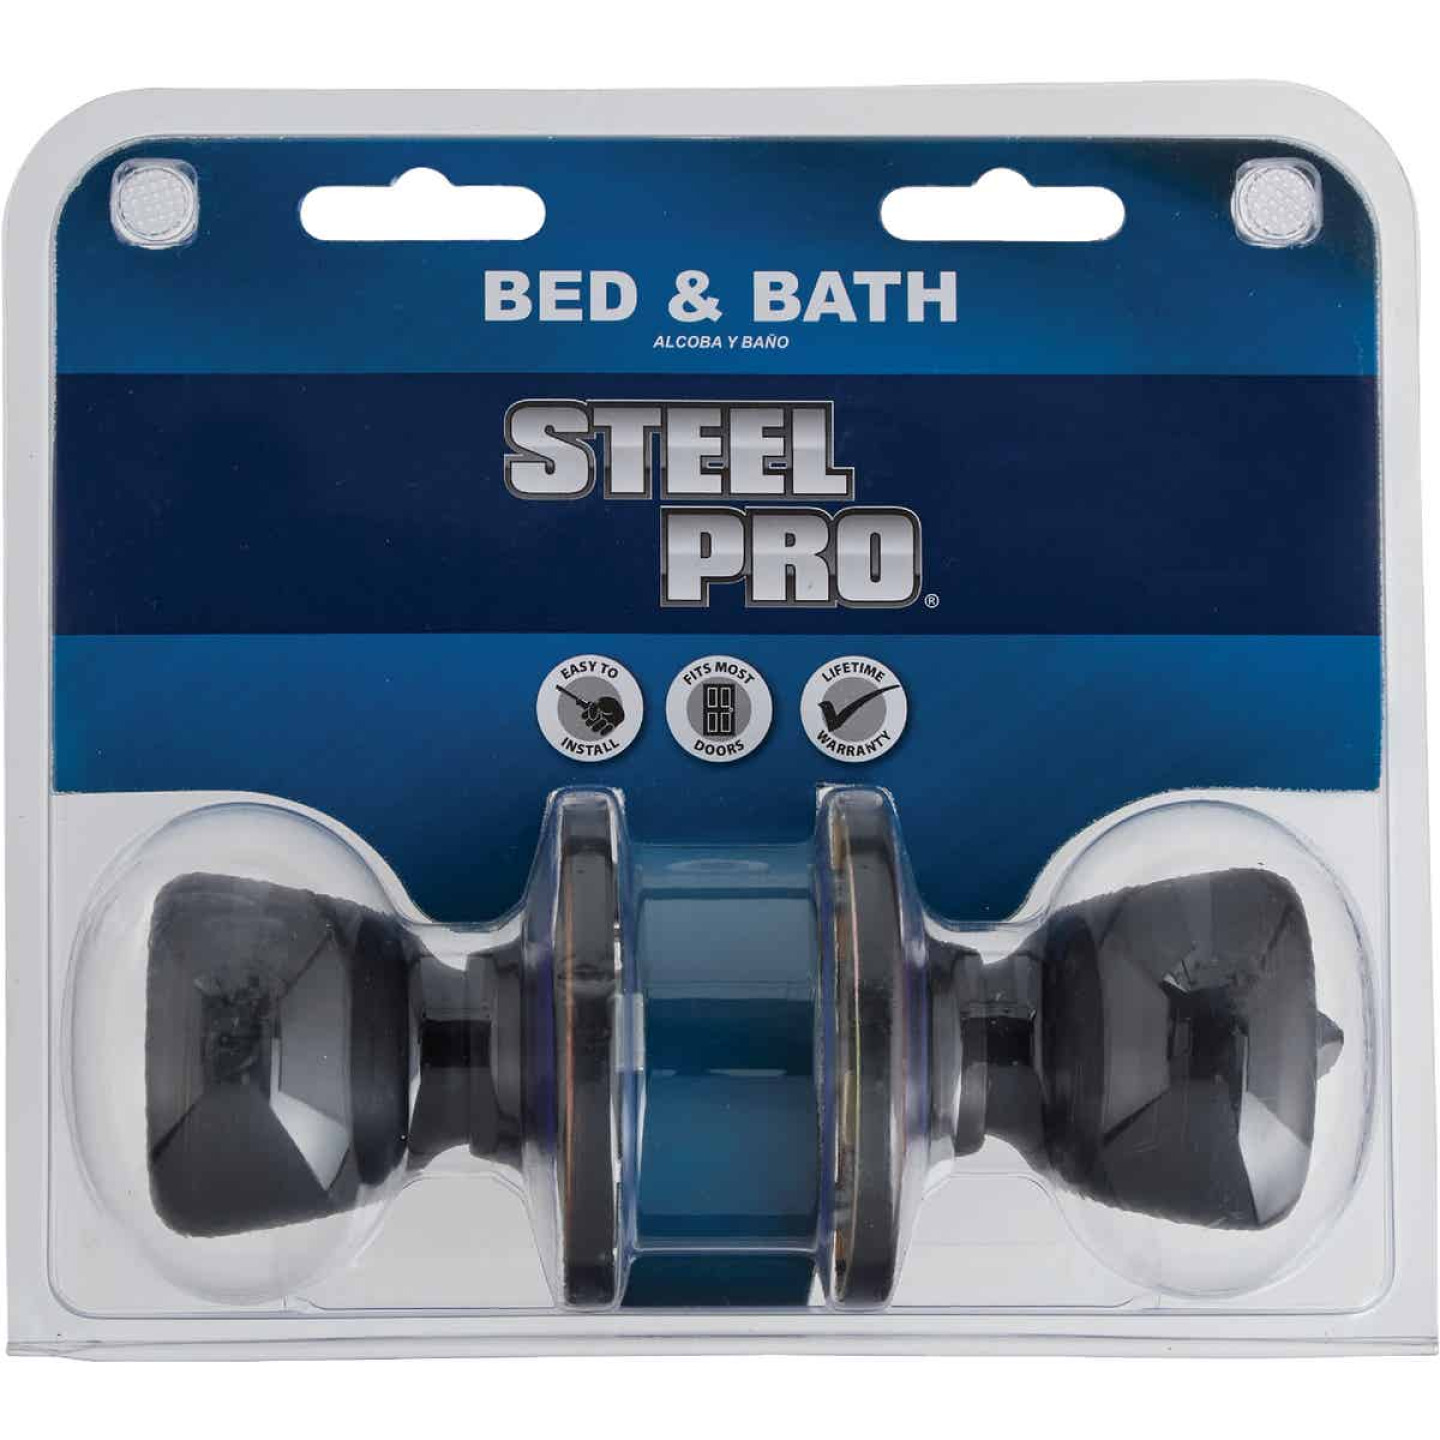 Steel Pro Oil Rubbed Bronze Bed & Bath Door Knob Image 2